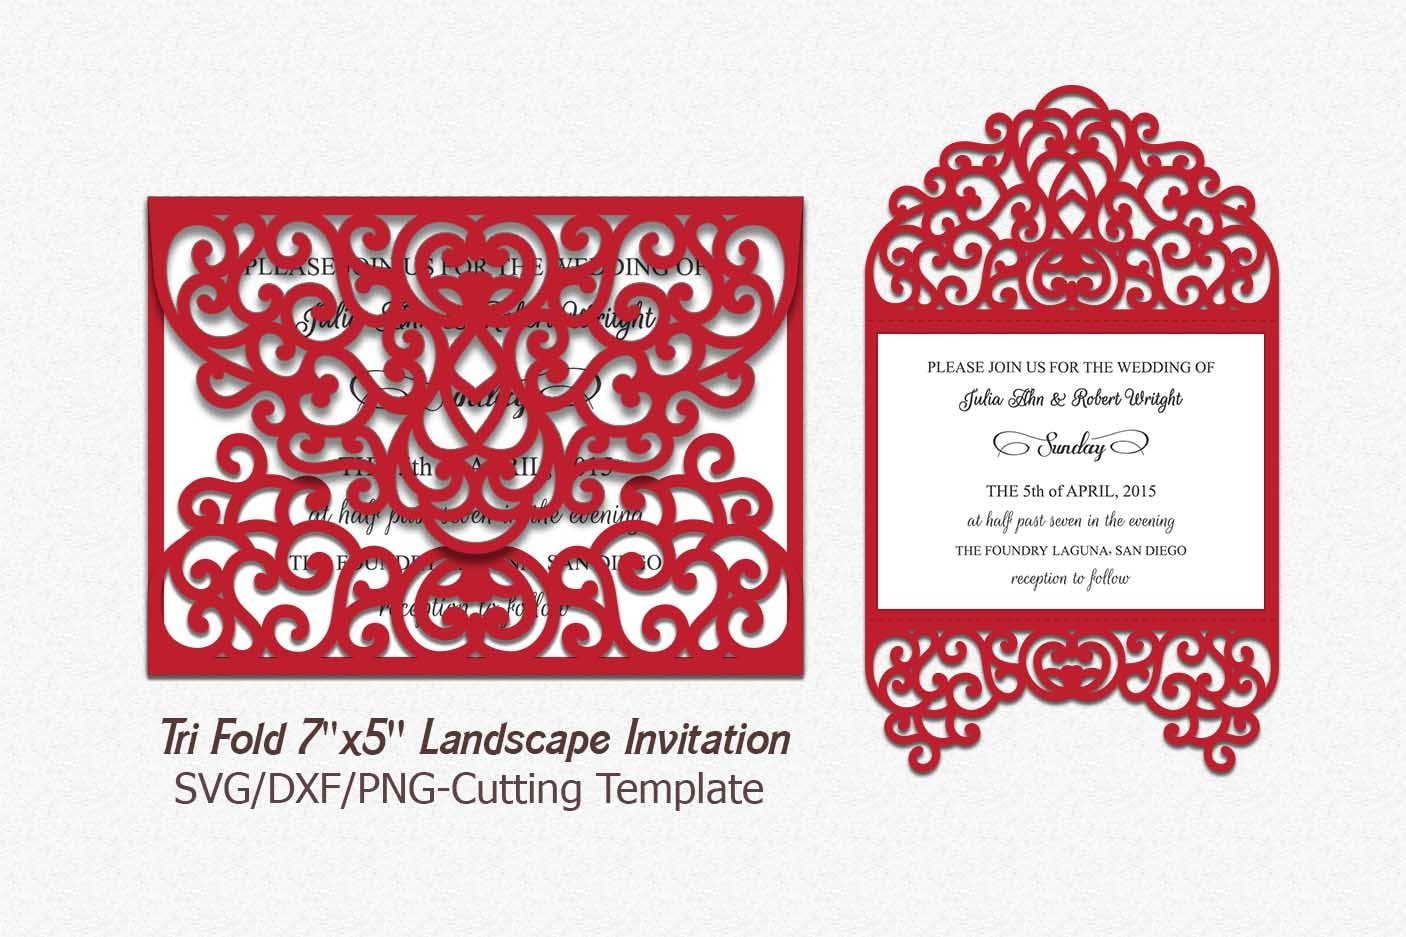 tri fold invitation svg laser cut wedding invitation | Etsy